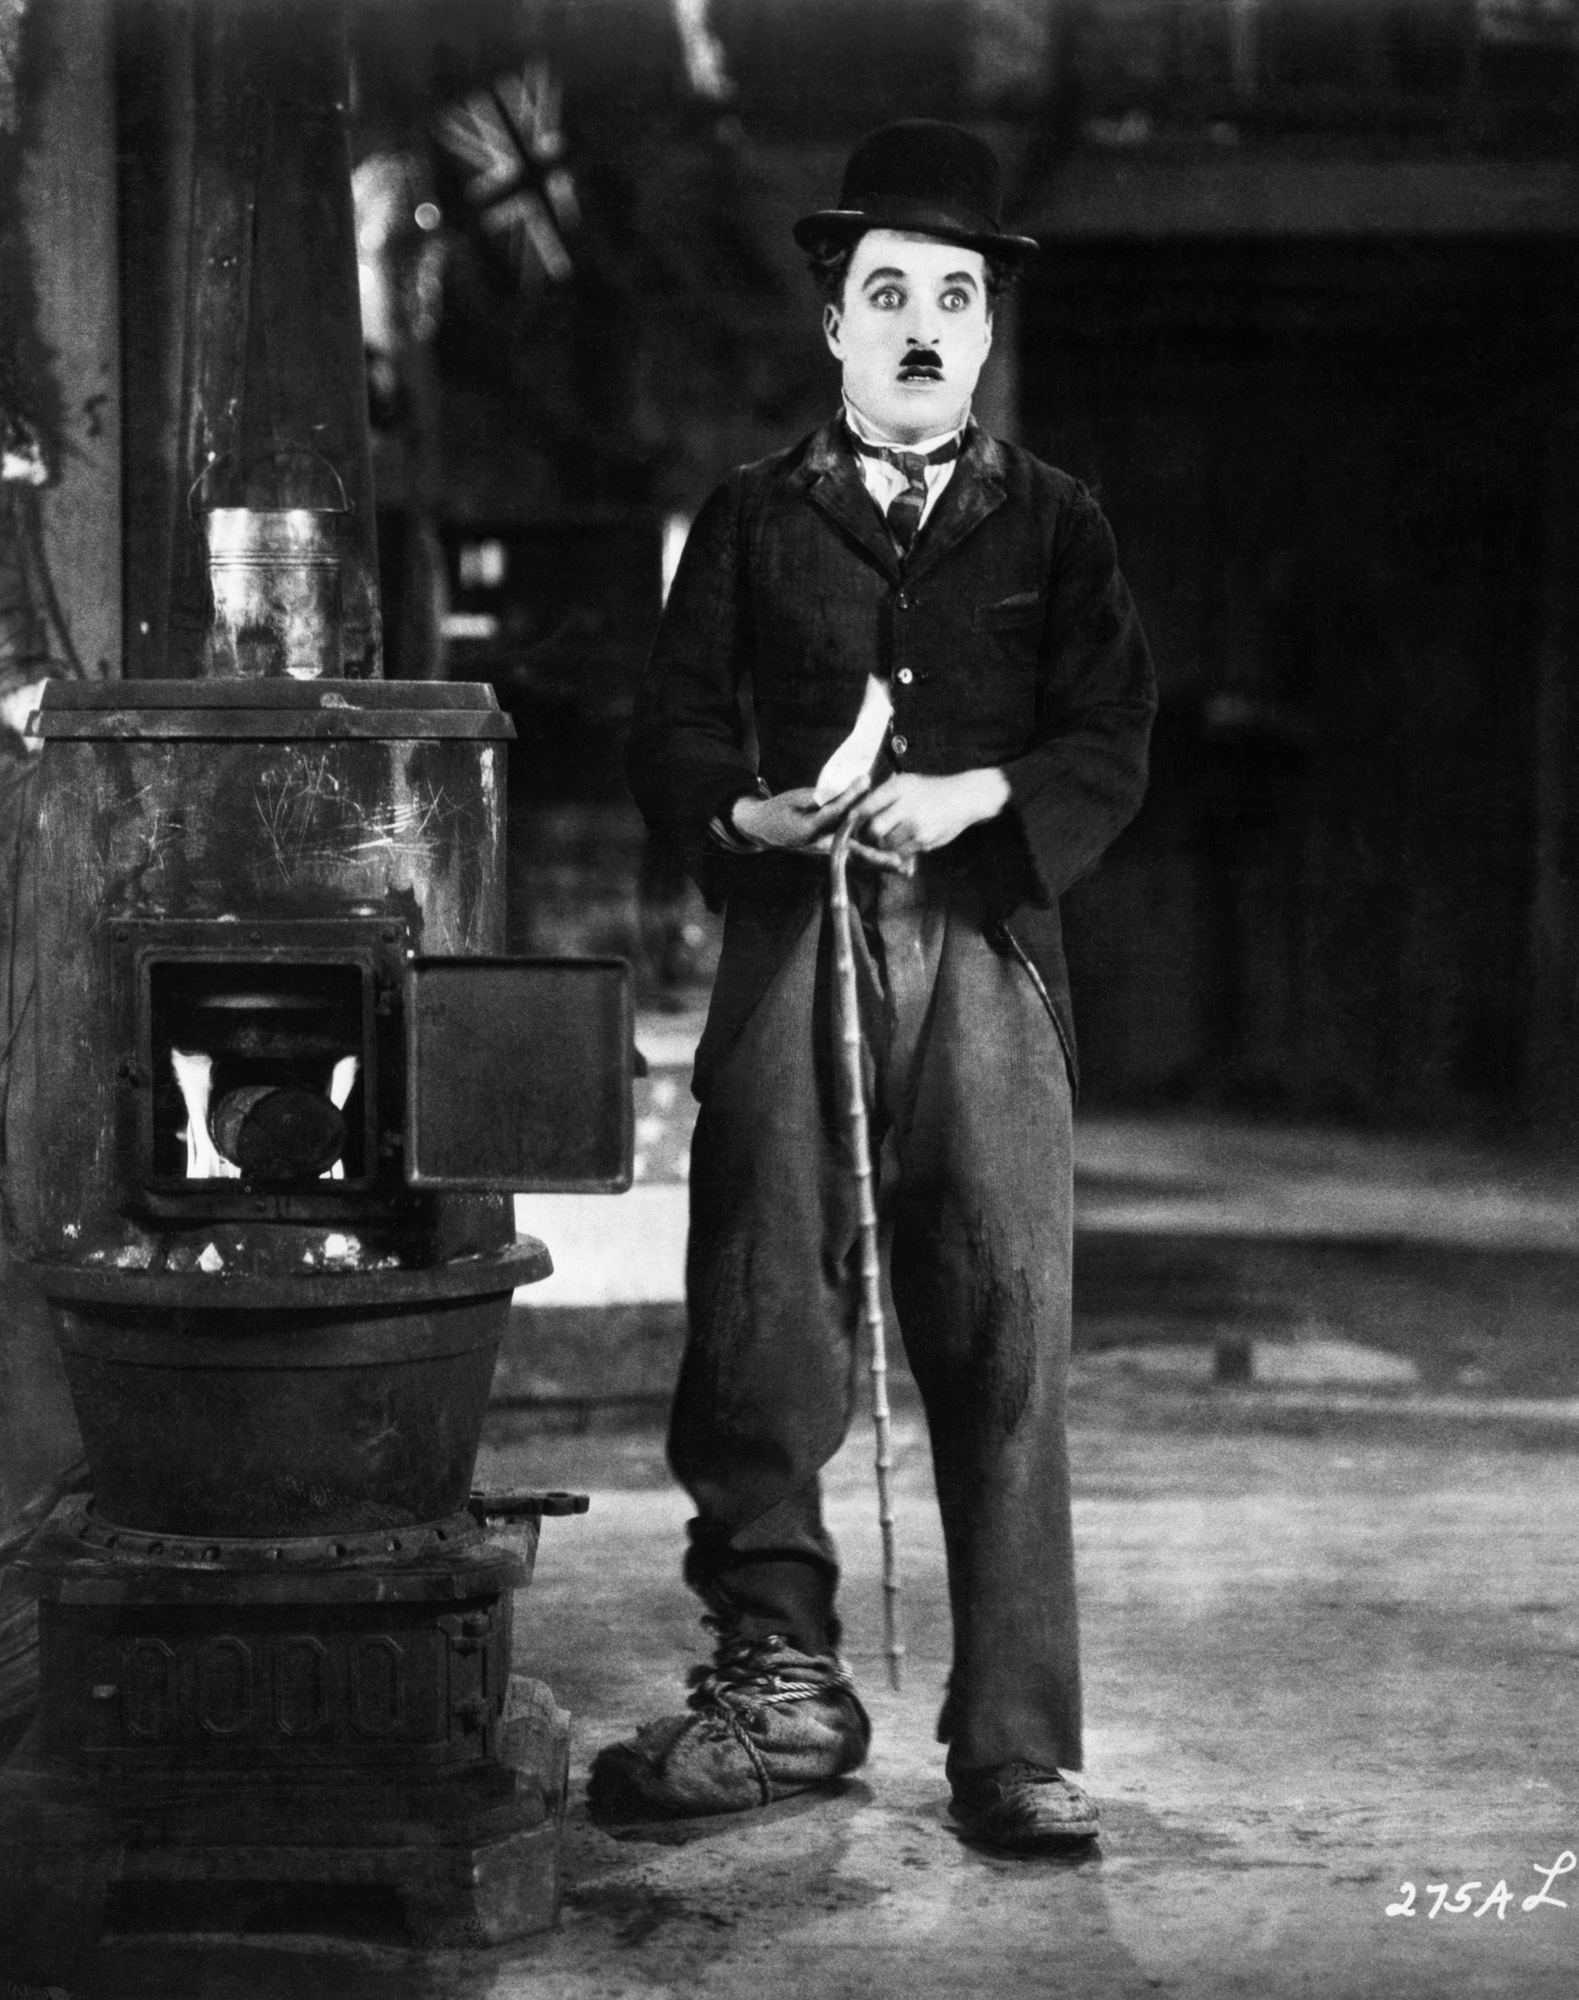 Photograph of Charlie Chaplin as the Tramp in The Gold Rush, c. 1925